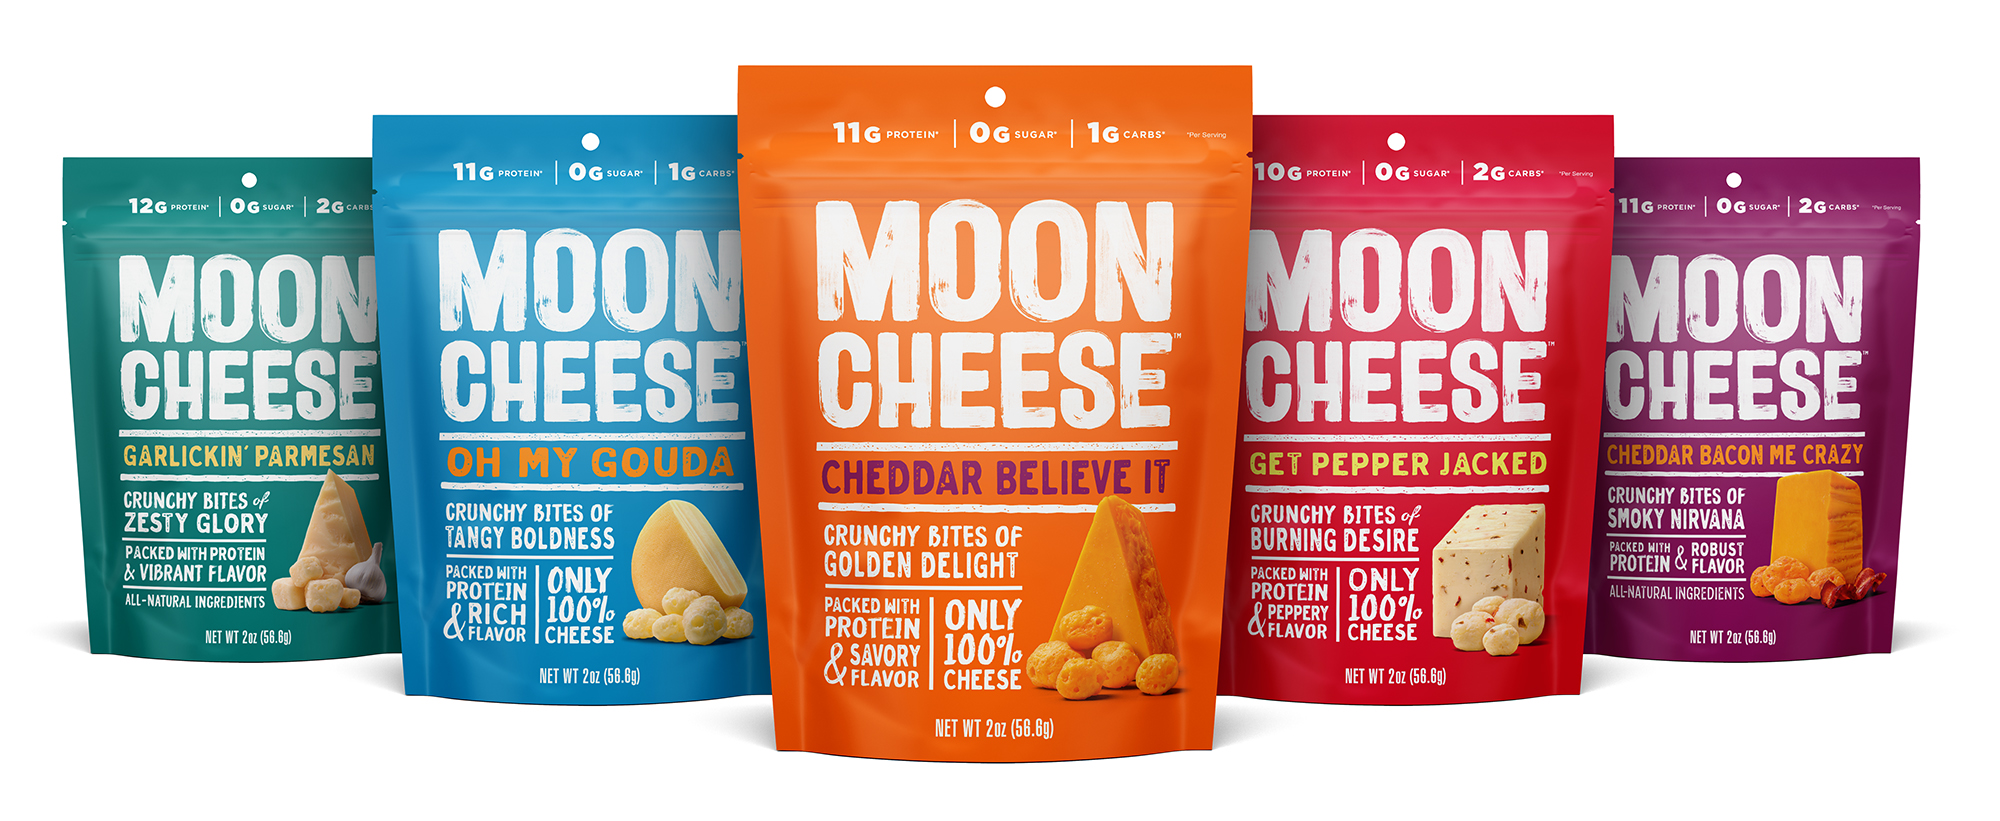 MoonCheese-5packages3